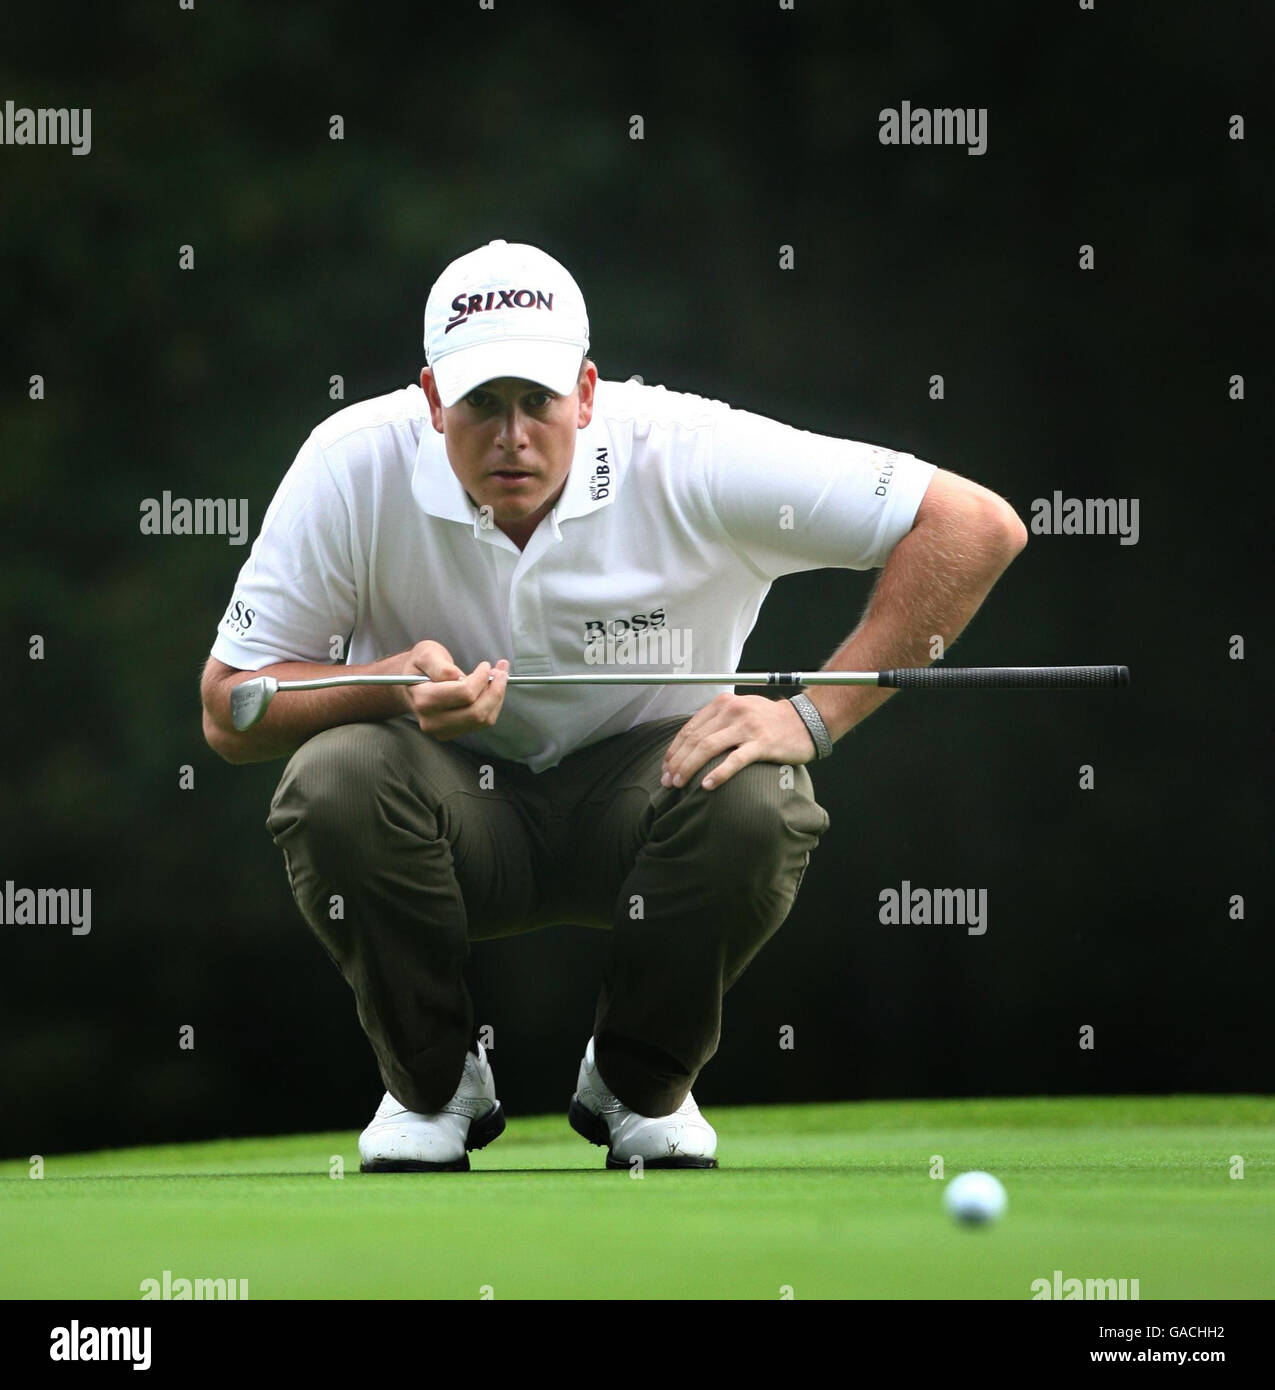 Golf - HSBC World Match Play Championship - Wentworth Club - Stock Image